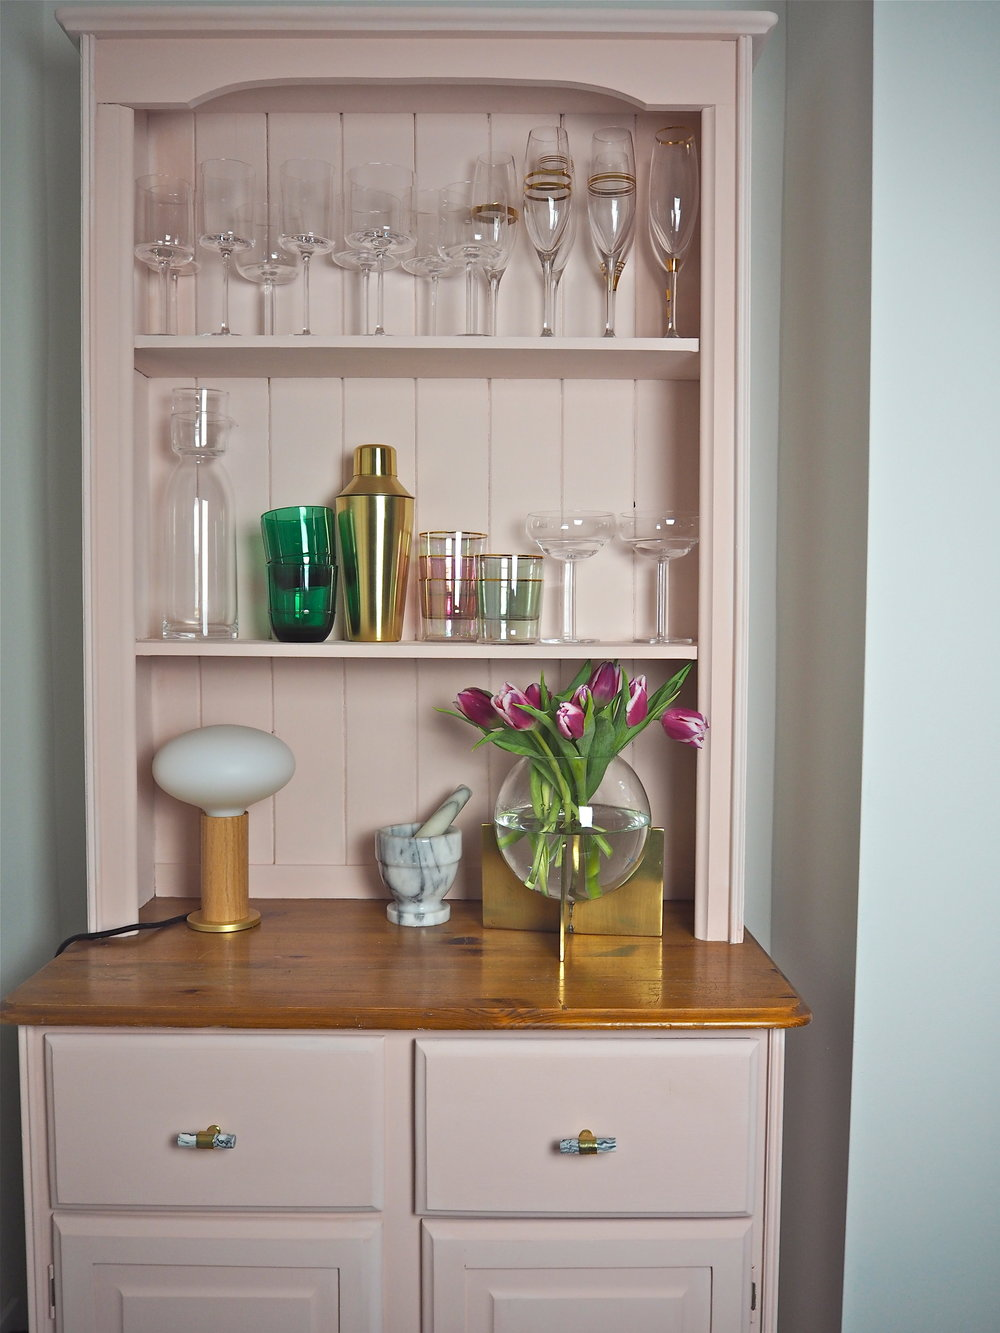 grand illusions chalk paint in pink